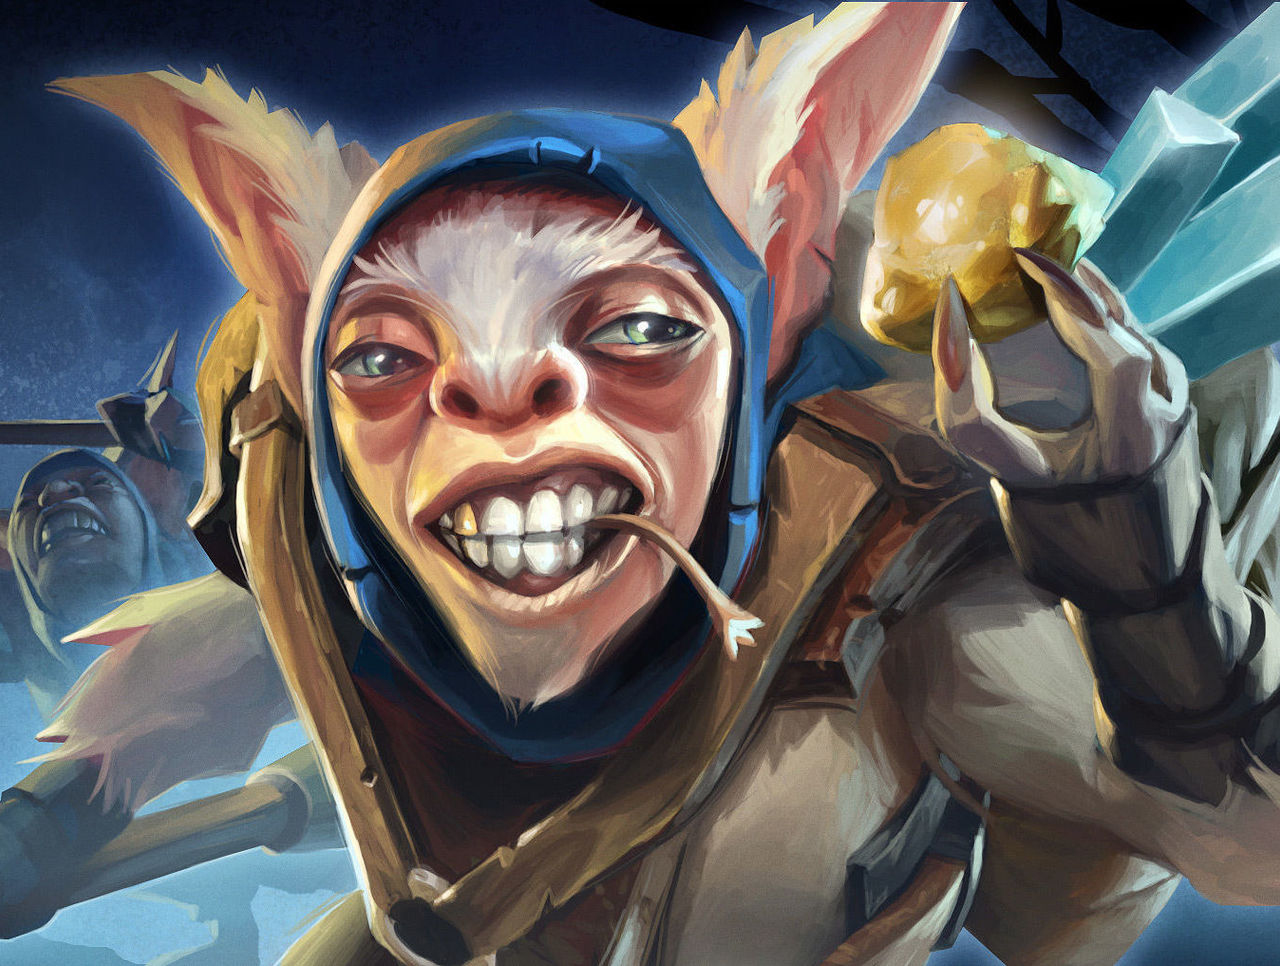 Look I Dont Want To Sound Like A Dick Here But Meepo Didnt Win The Genetic Lottery What Im Trying To Say Is That Meepo Is Ugly